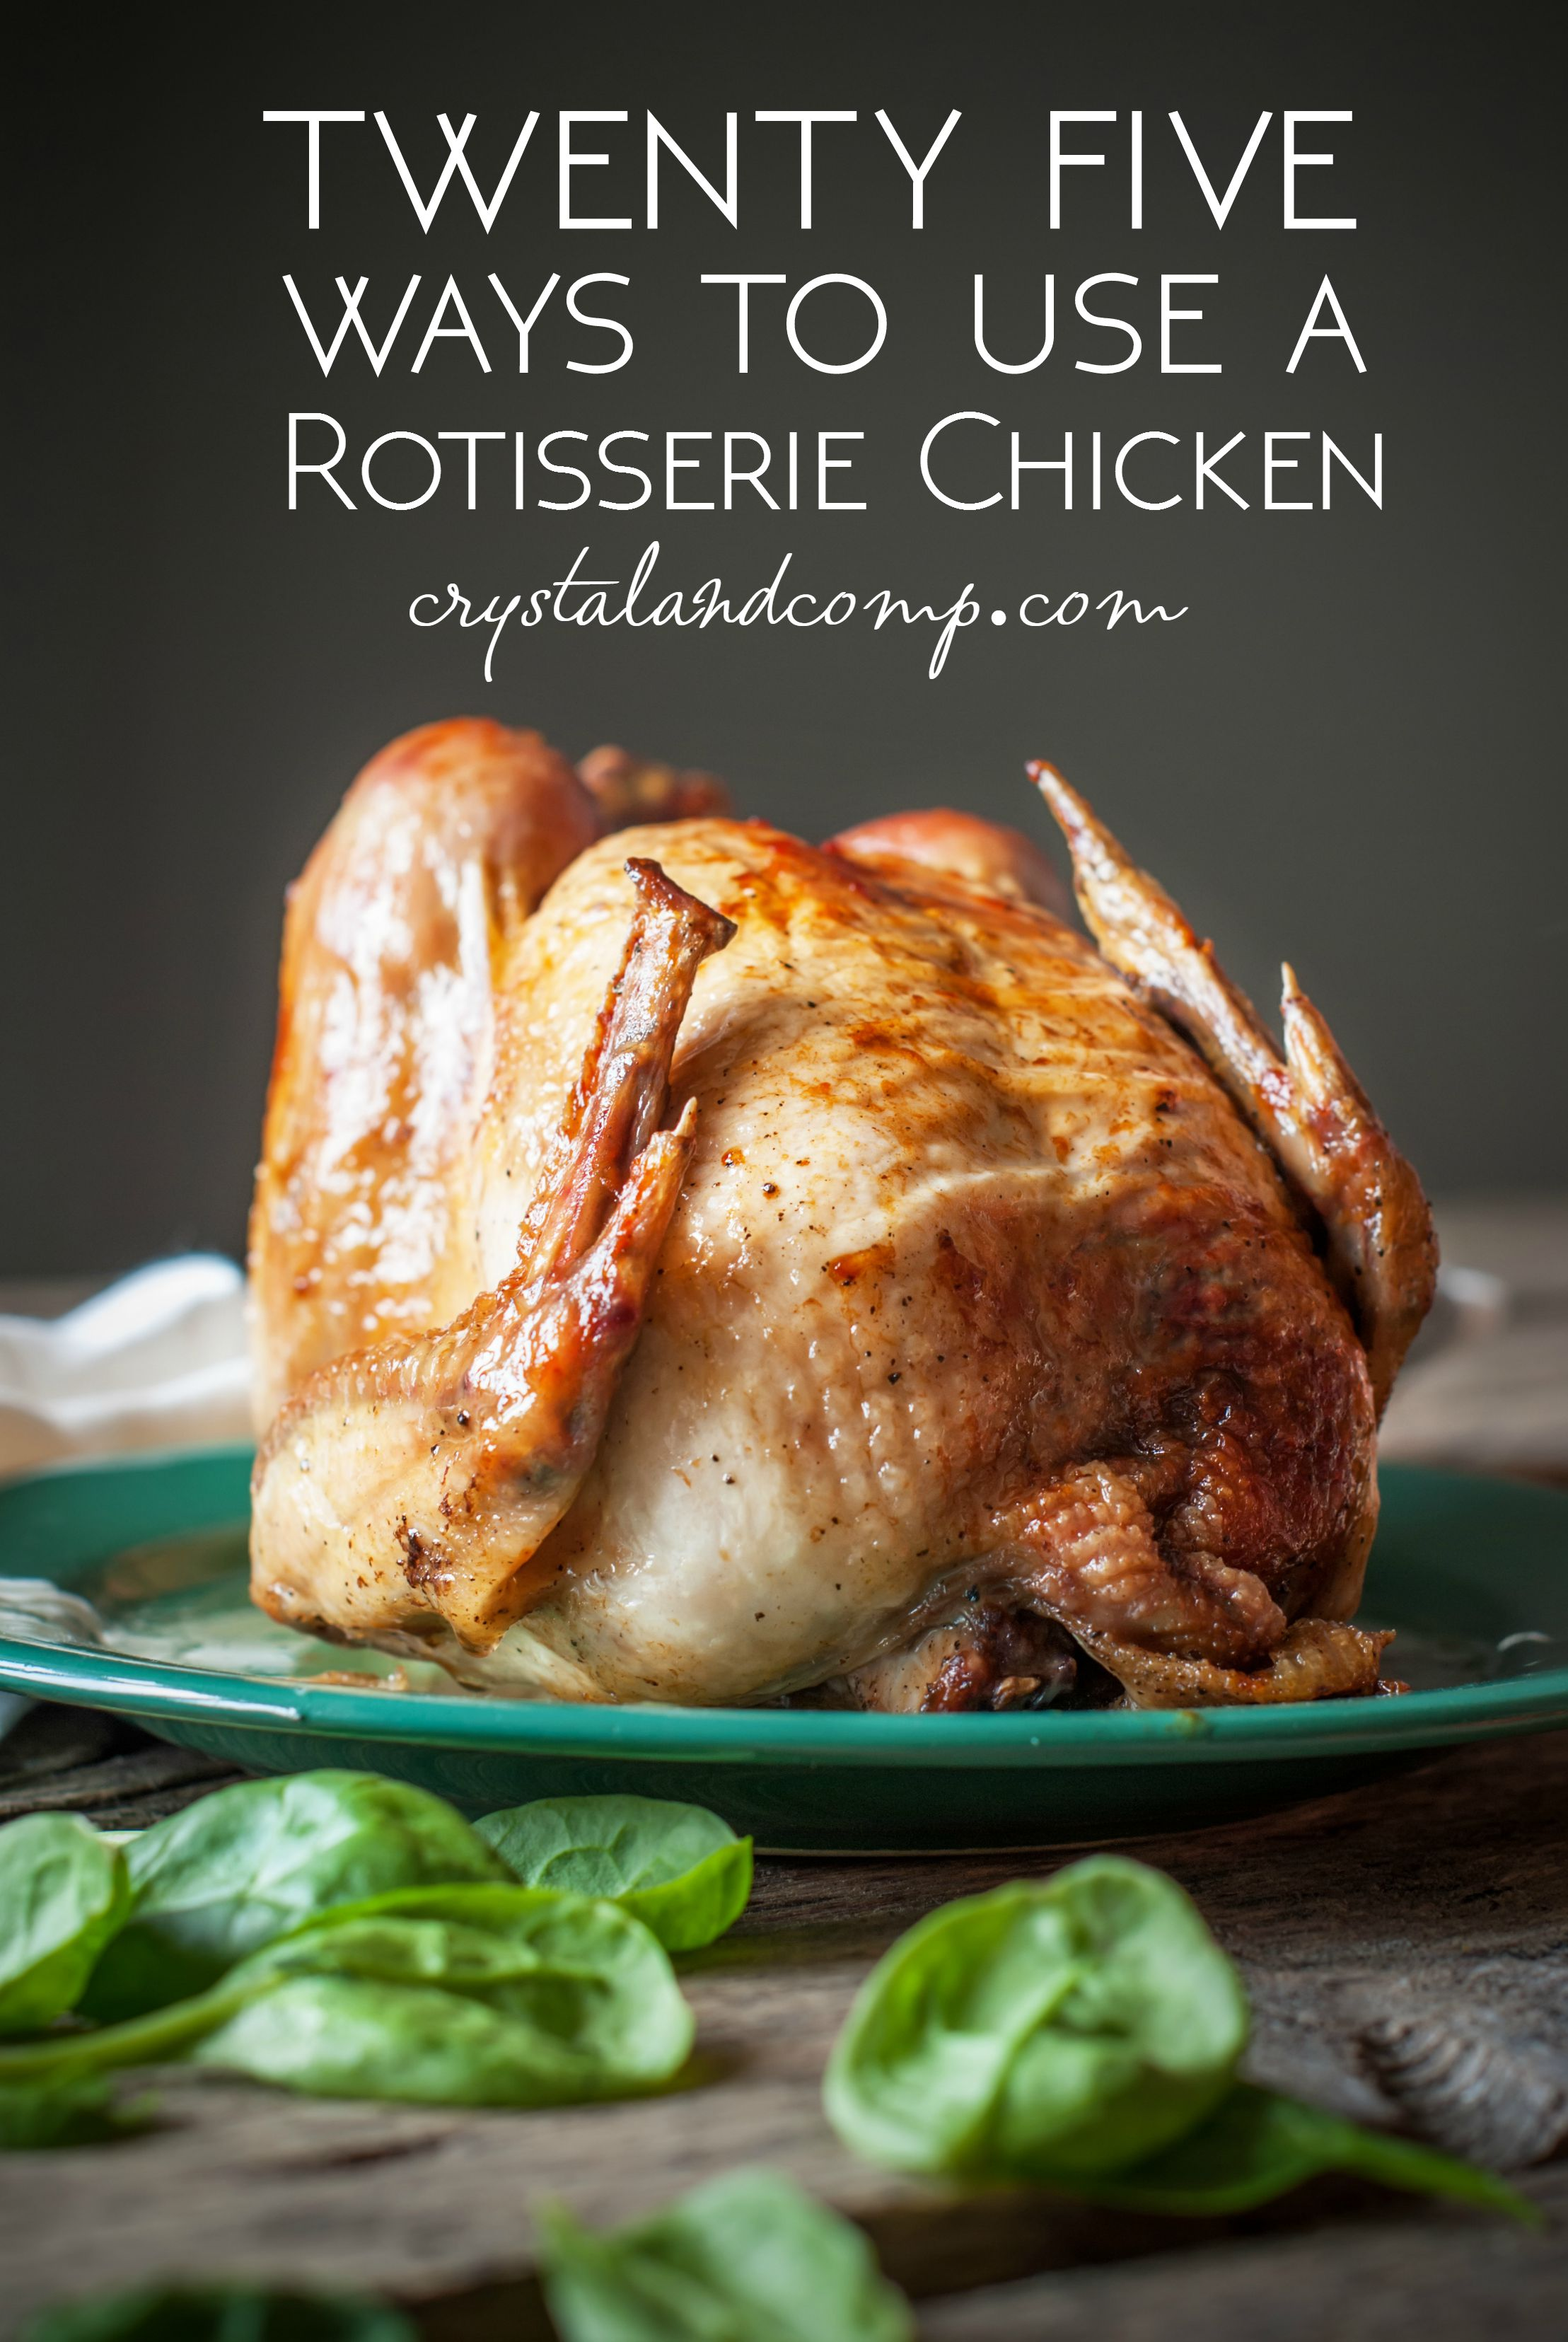 Blog crystalandcomp 25 ways to use a rotisserie chicken fandeluxe Image collections